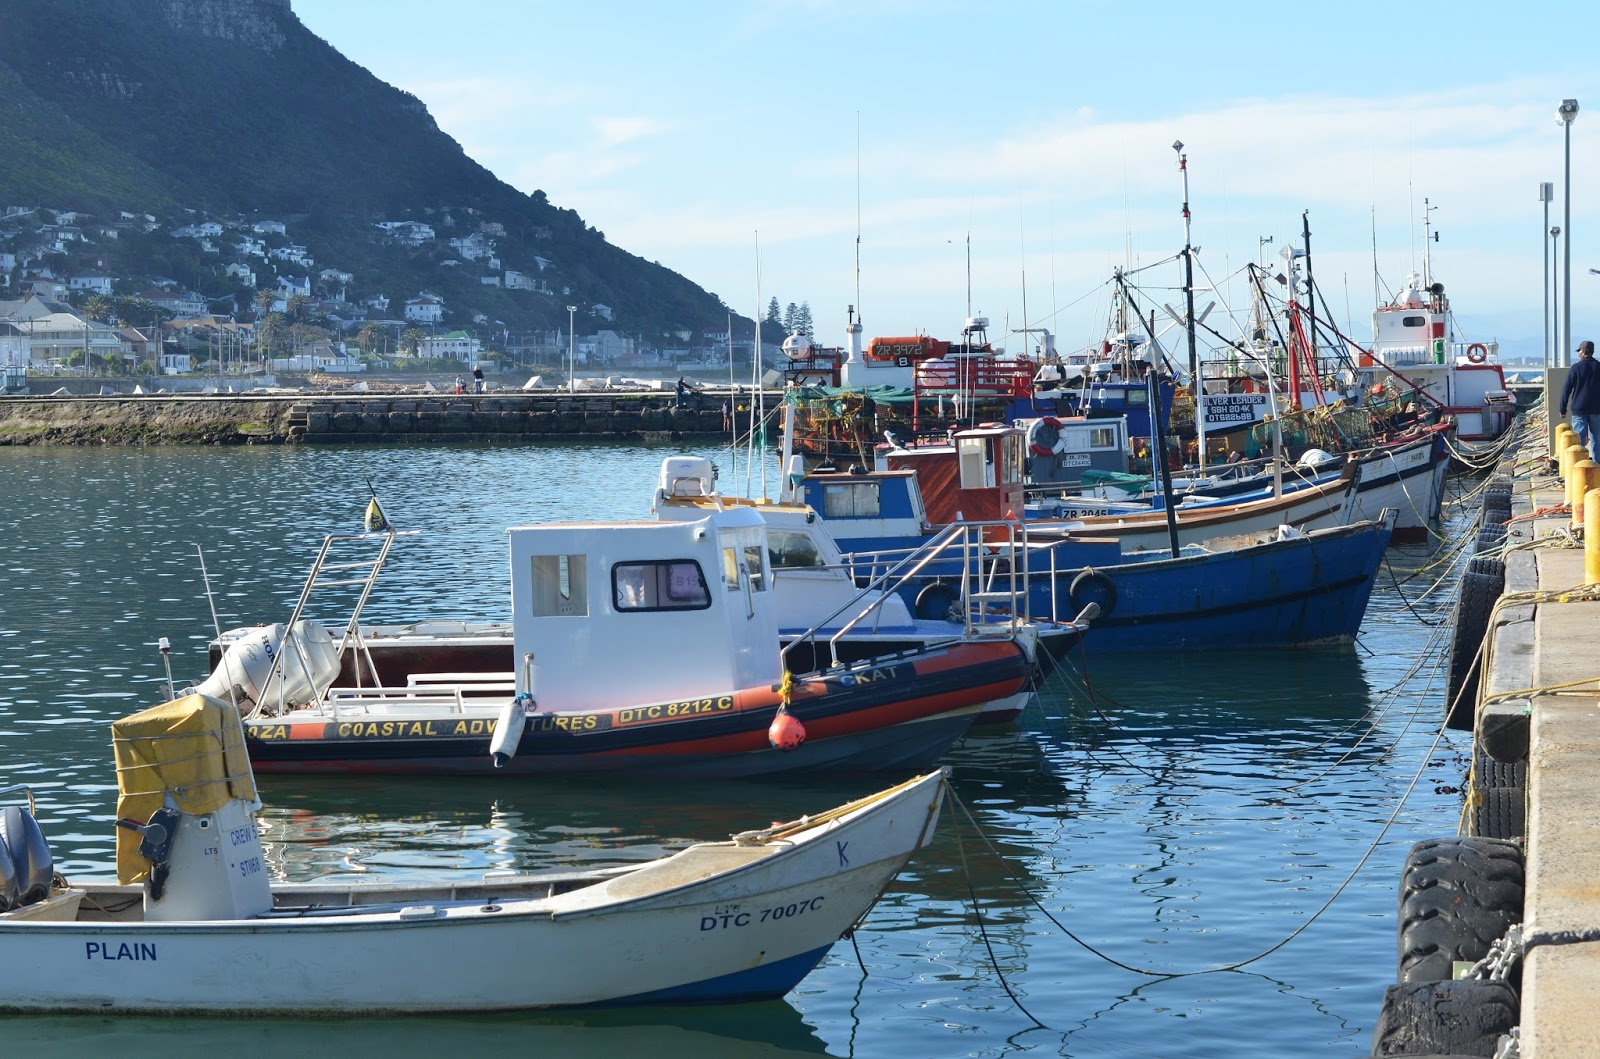 Cape Town South Africa Fishing Boat Attack | India Post